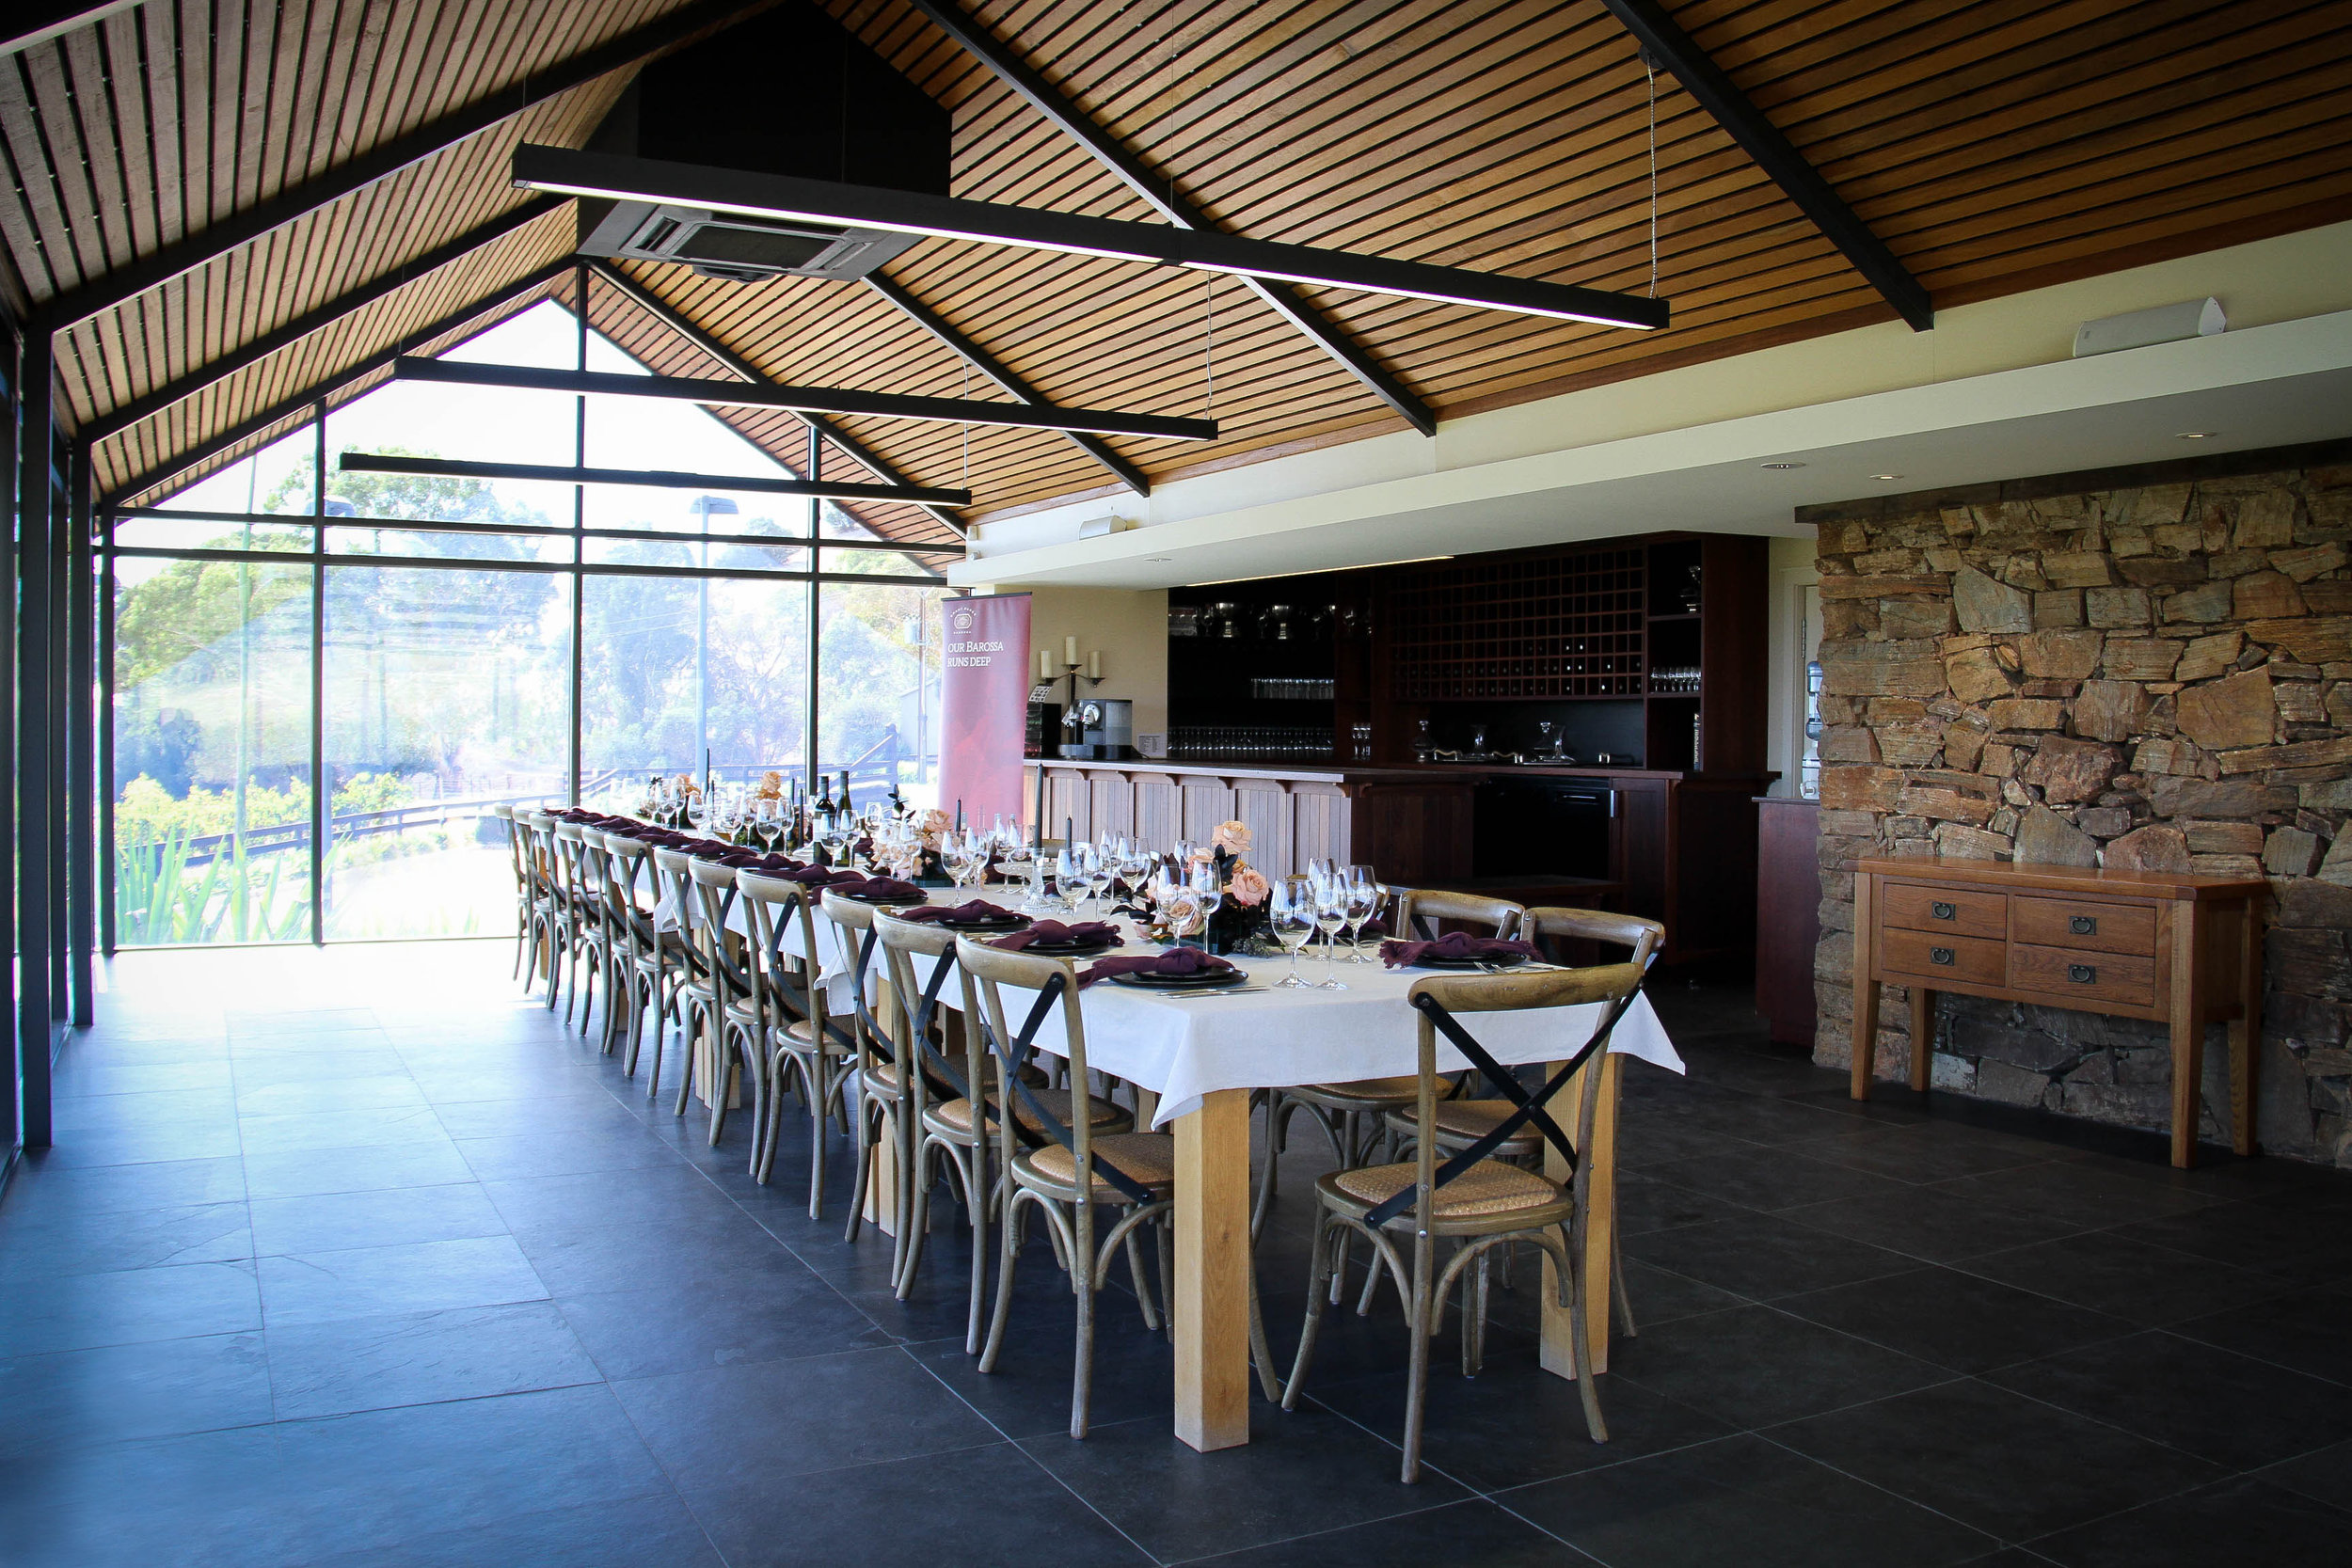 MESHACH - A hidden gem in the heart of the Barossa Valley.